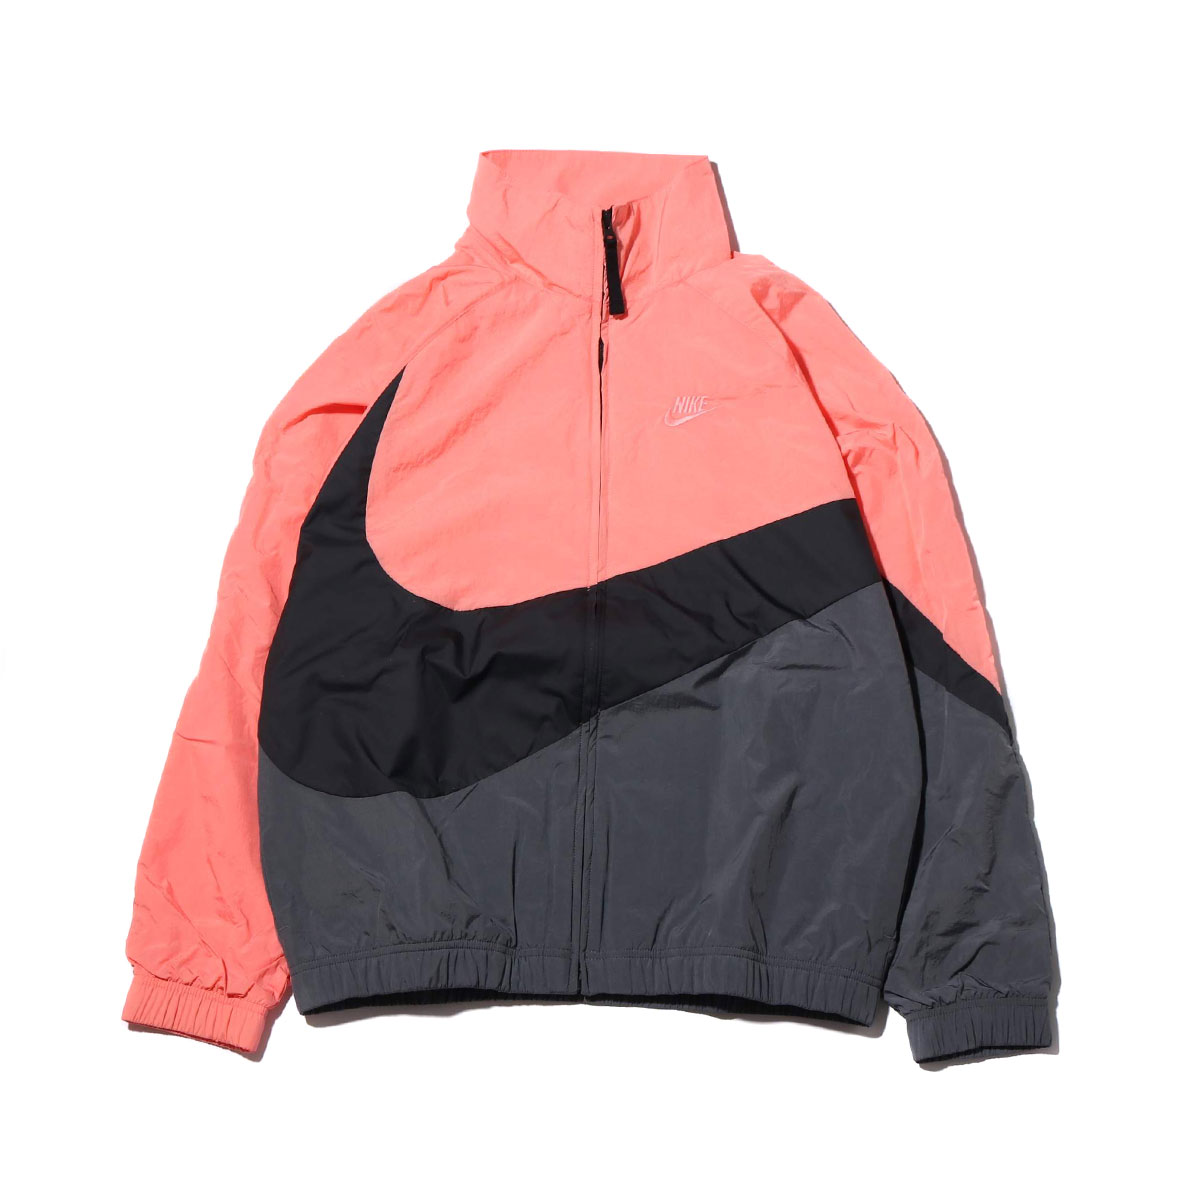 NIKE AS M NSW HBR JKT WVN STMT(PINK GAZE /BLACK/DARK GREY/PINK GAZE)(ナイキ HBR STMT ウーブン ジャケット)【メンズ】【ジャケット】【19SU-I】